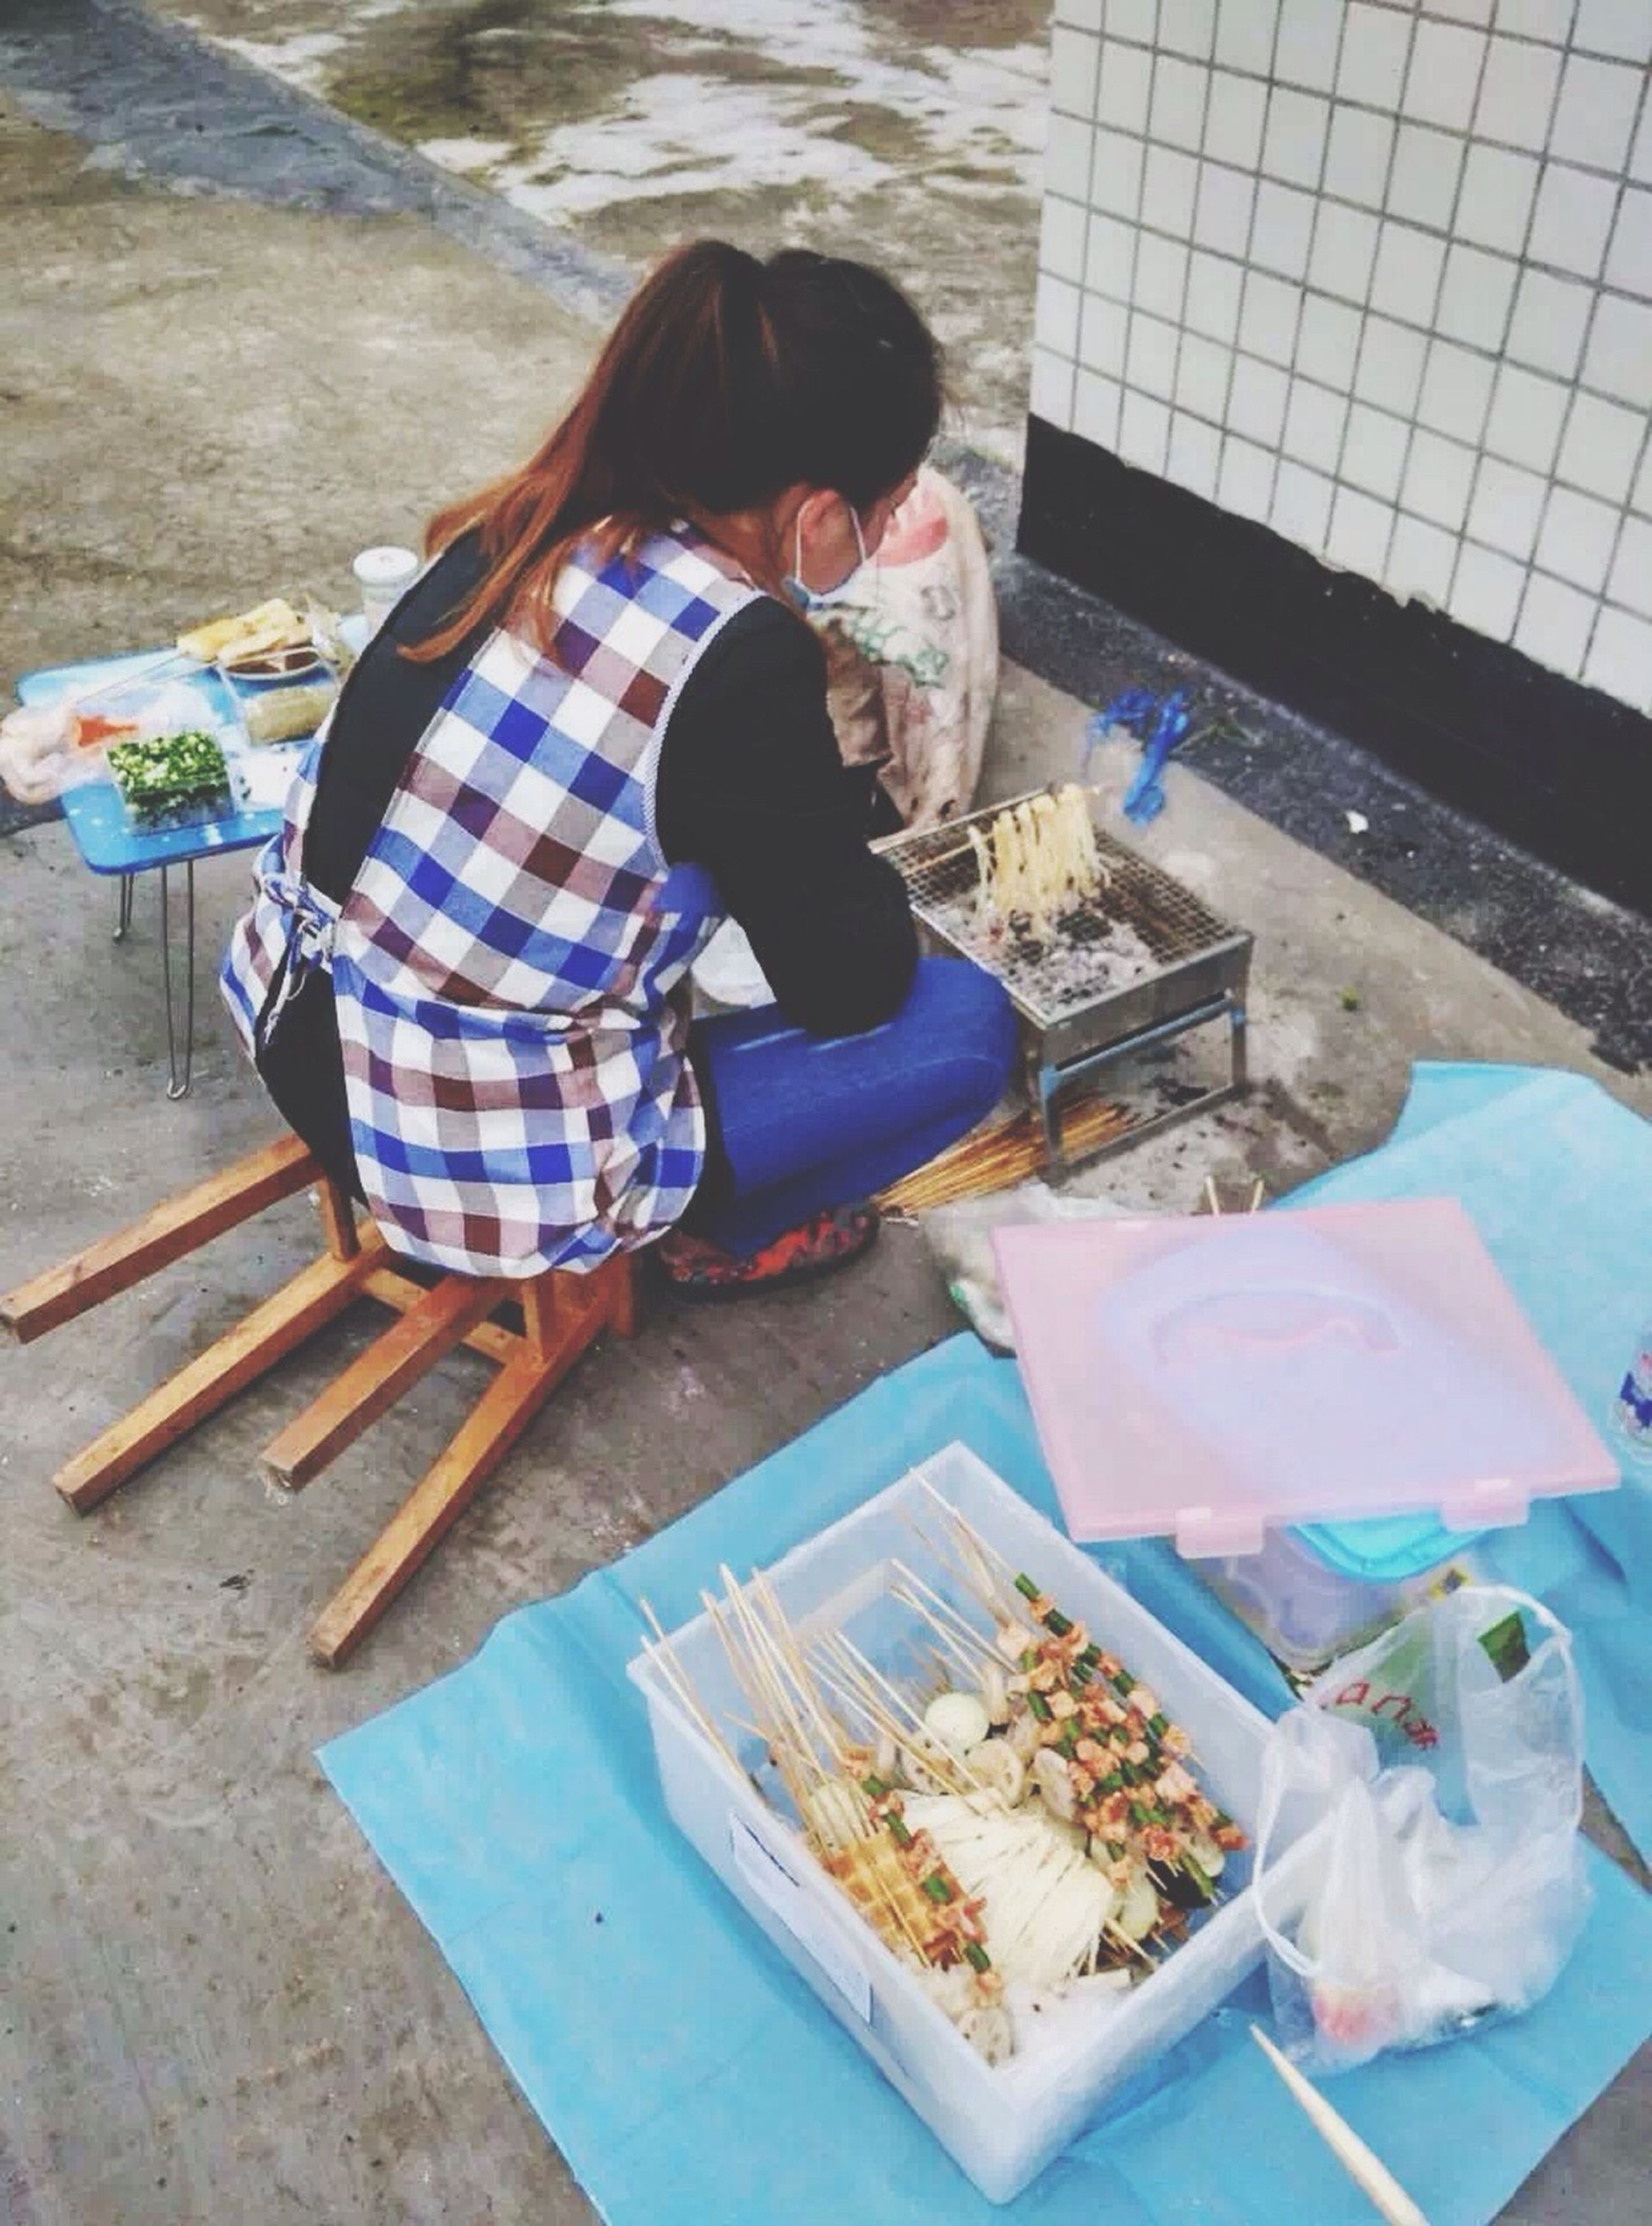 childhood, full length, lifestyles, leisure activity, casual clothing, elementary age, girls, boys, sitting, person, innocence, high angle view, rear view, holding, standing, playing, food and drink